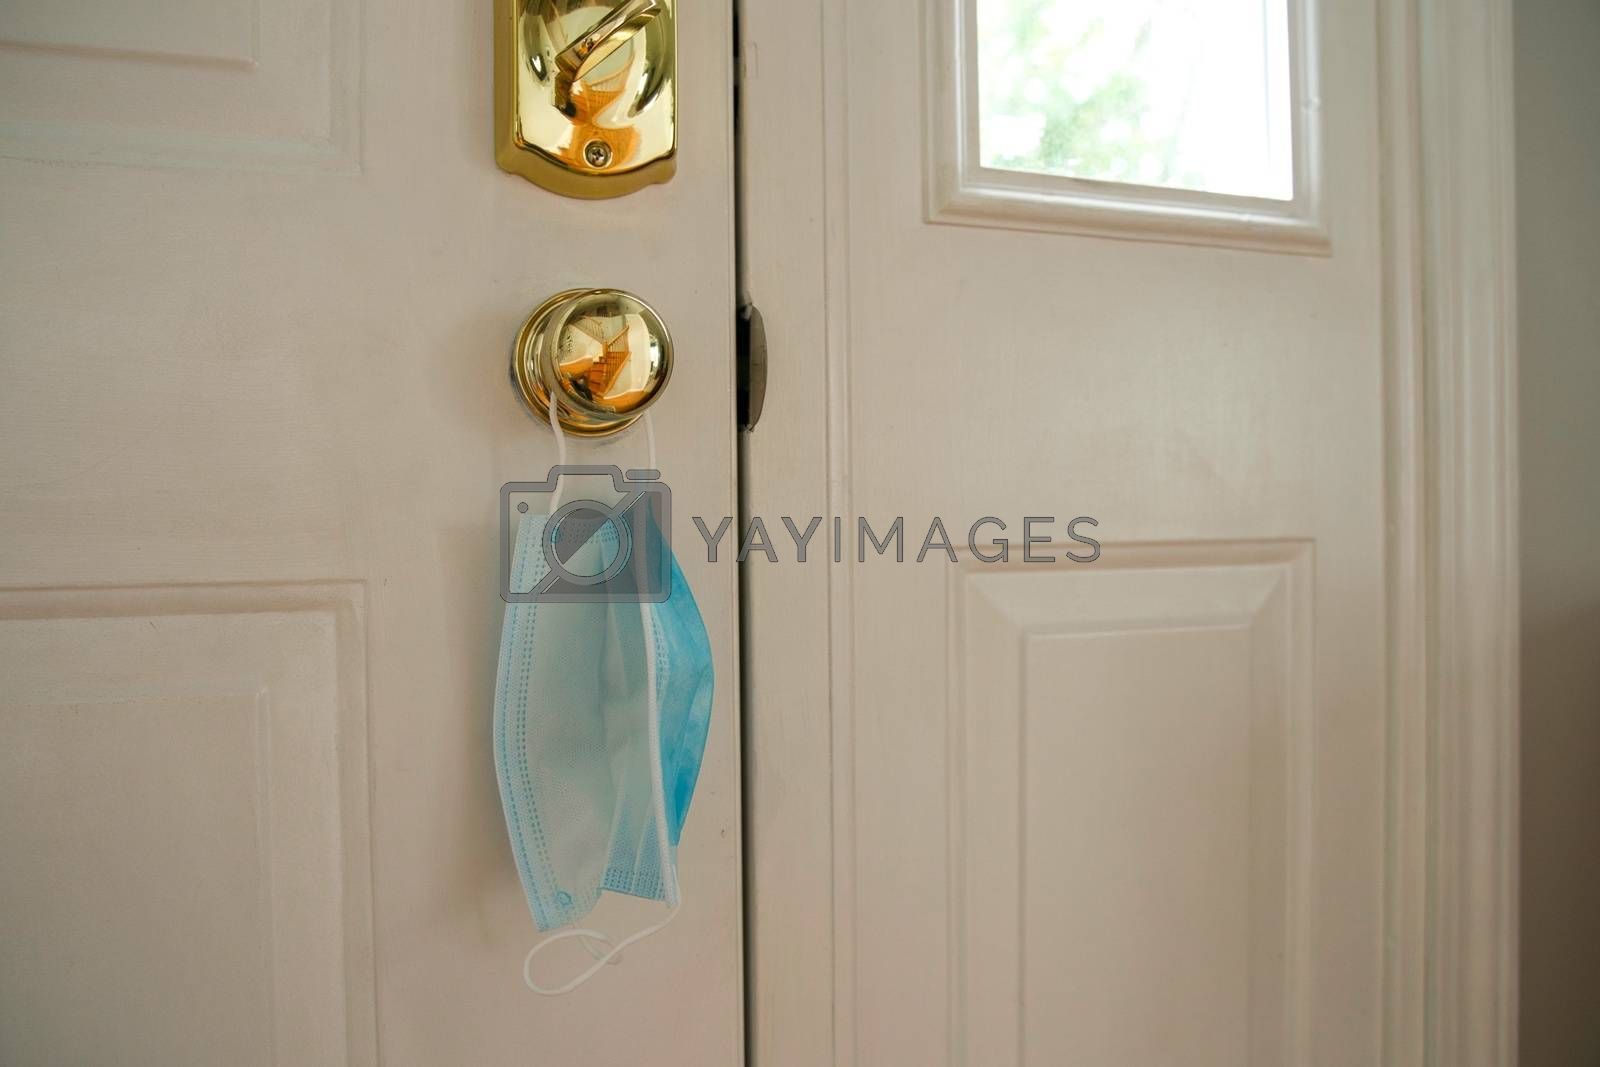 Face mask hanging from door handle on white door with sunlight coming in through window. Covid-19 coronavirus concept image with room for text or copy